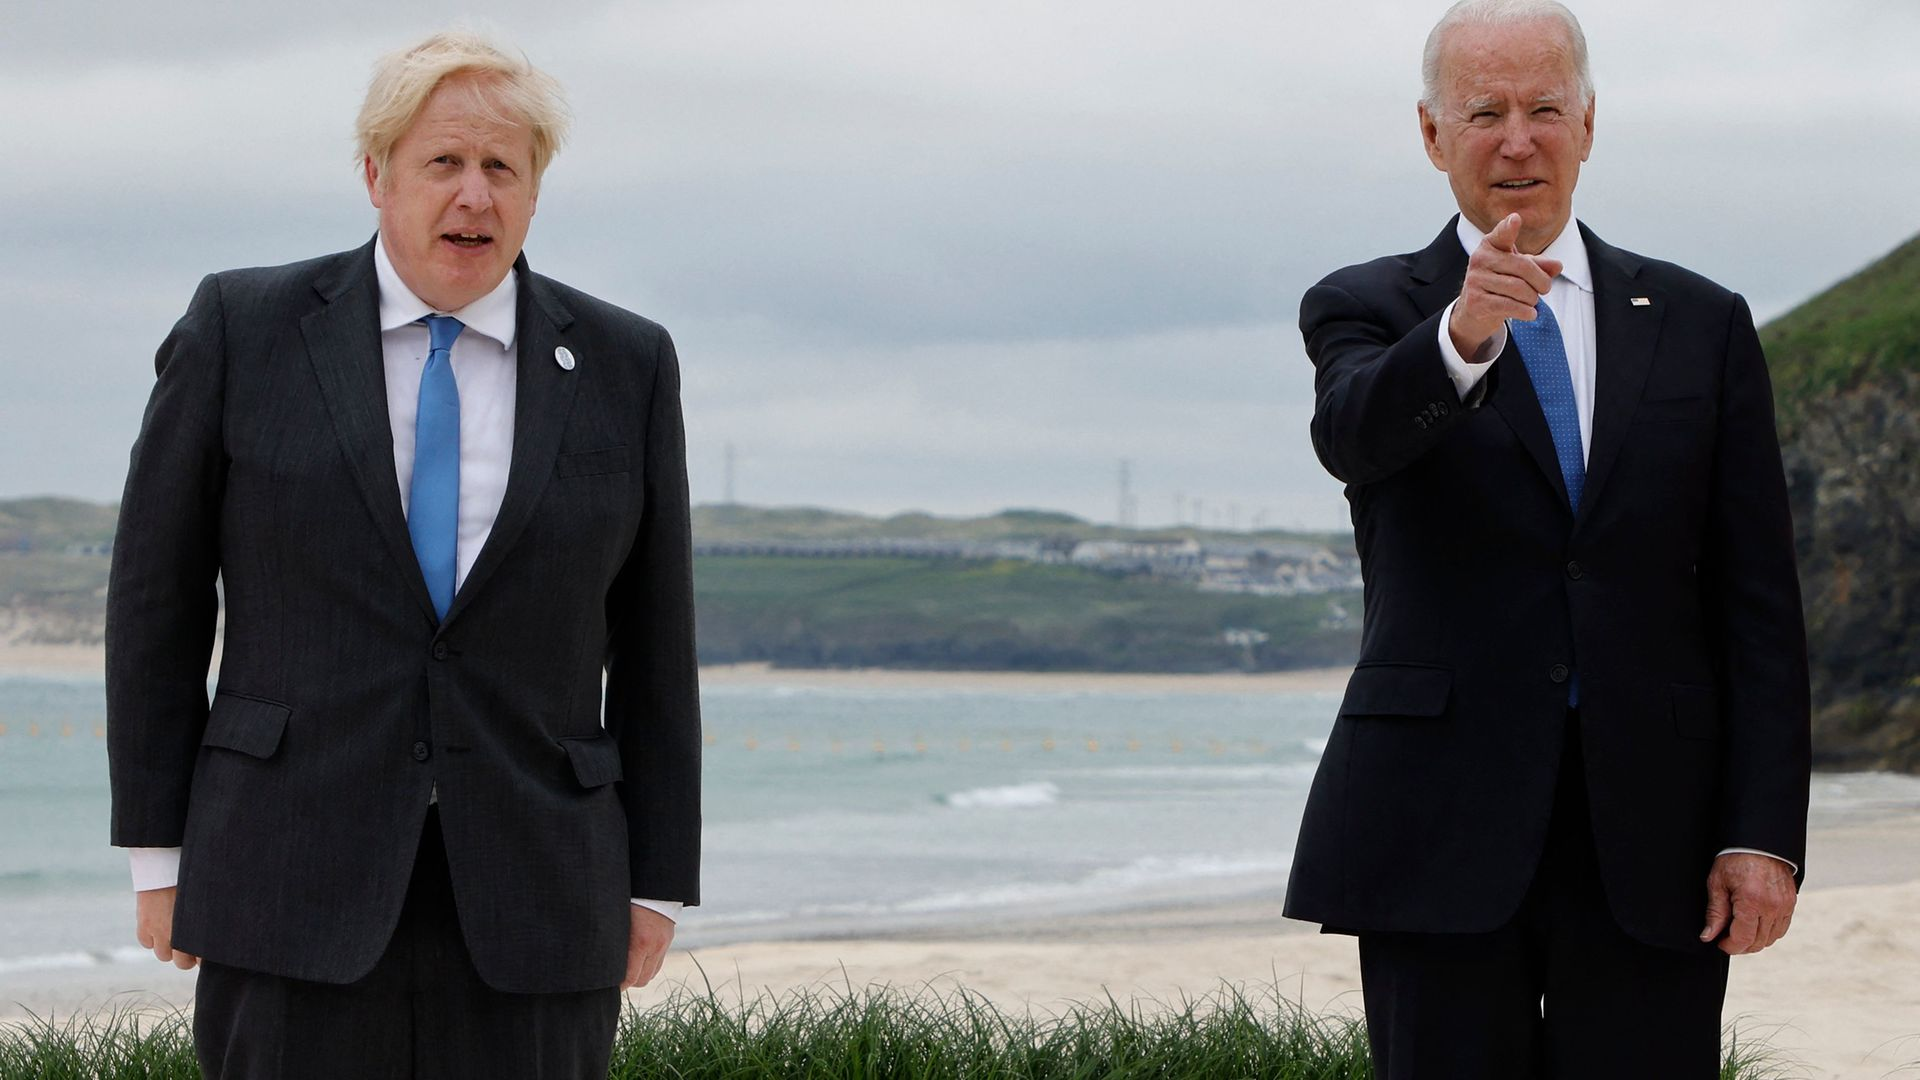 Boris Johnson welcomes  Joe Biden during the G7 summit in Carbis Bay, Cornwall, south-west England - Credit: Photo by LUDOVIC MARIN/AFP via Getty Images